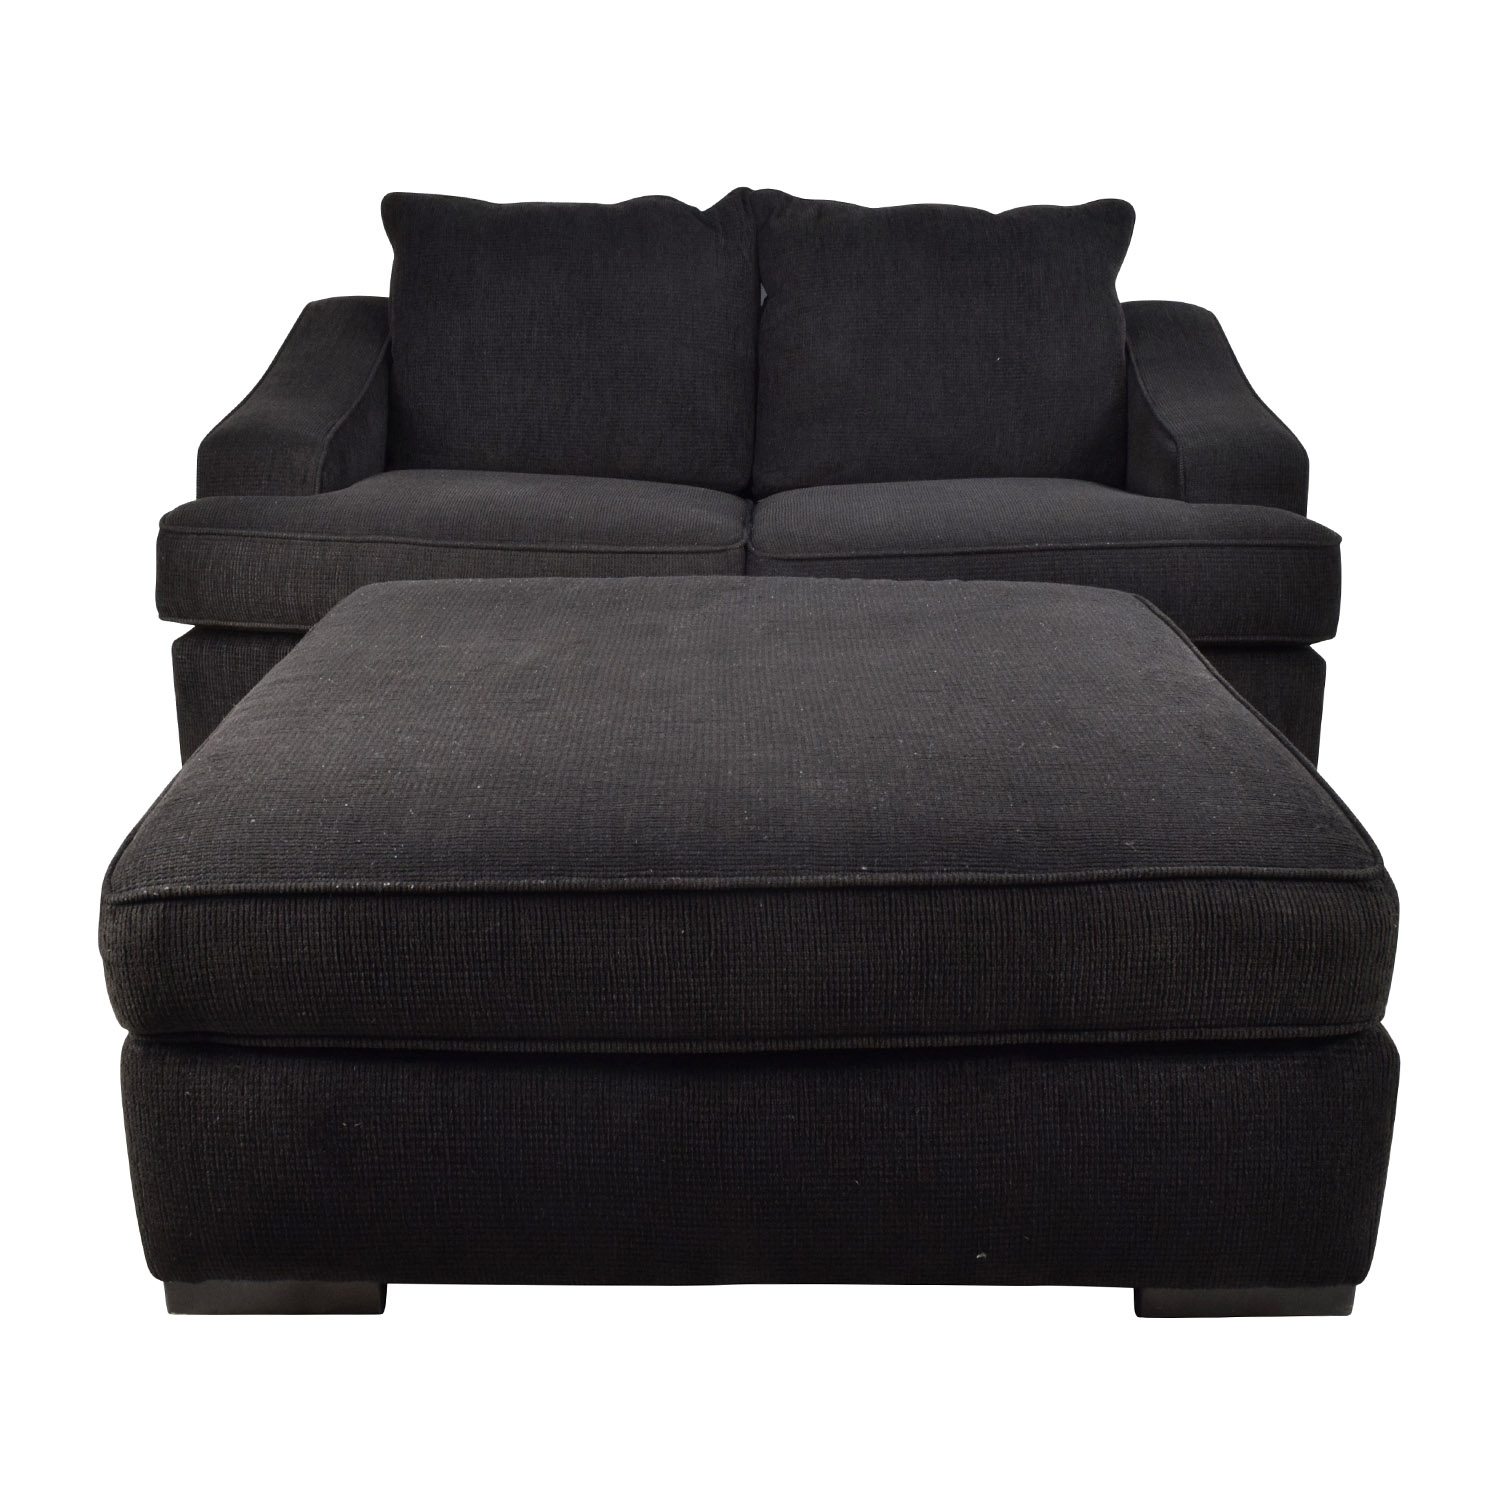 67% Off – Black Cloth Loveseat And Matching Oversized Ottoman / Sofas Intended For Loveseats With Ottoman (Photo 9 of 10)